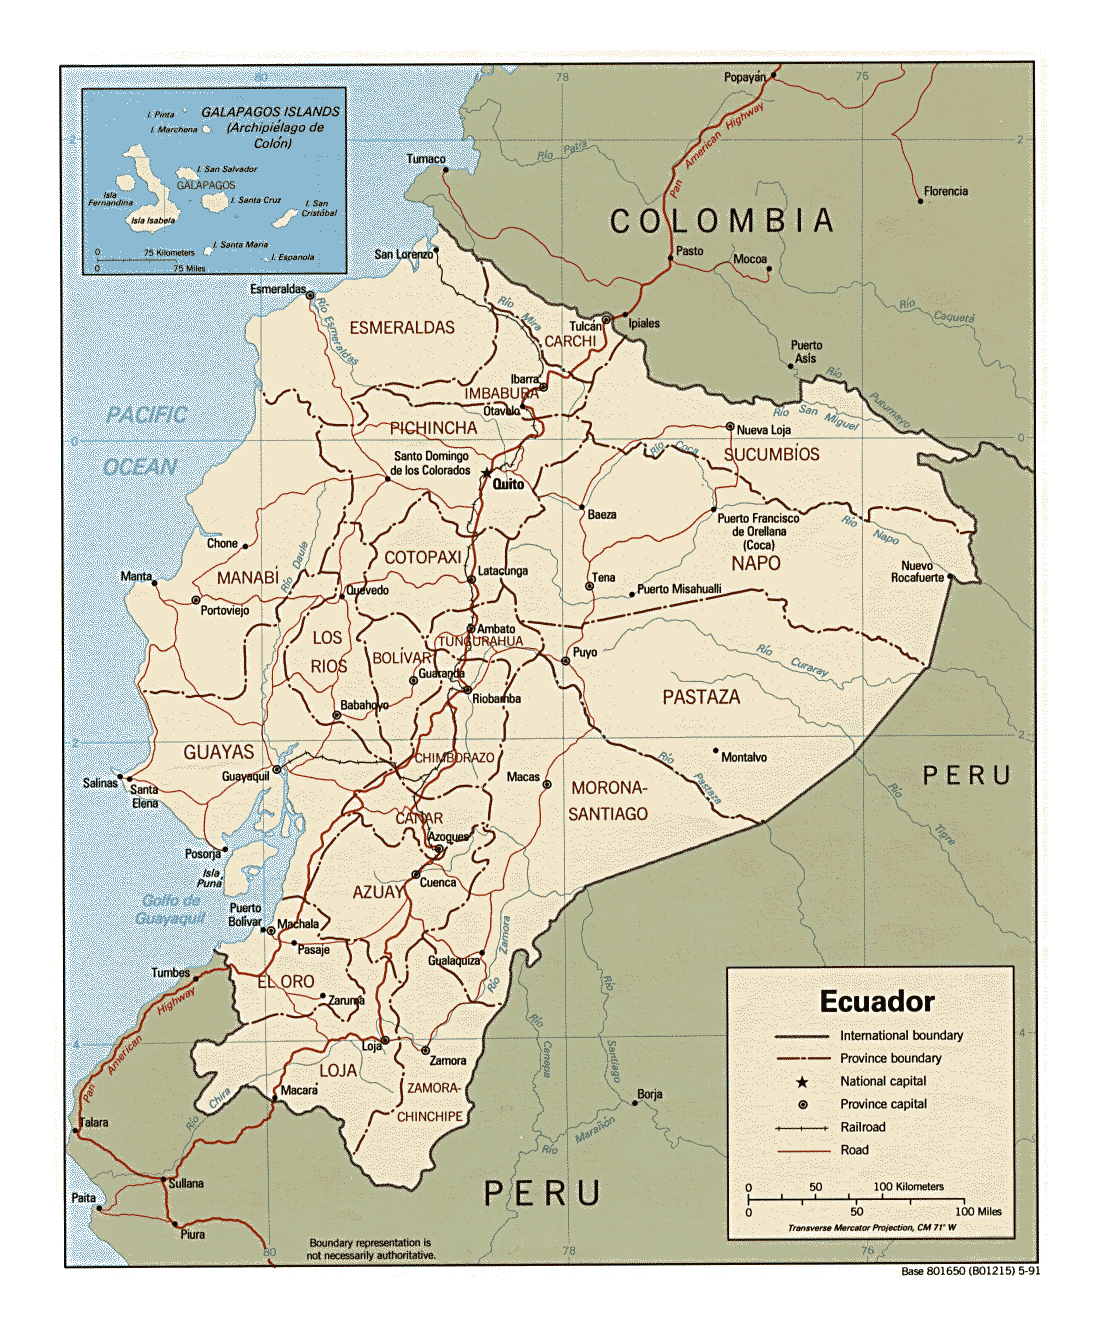 Detailed political and administrative map of Ecuador with major